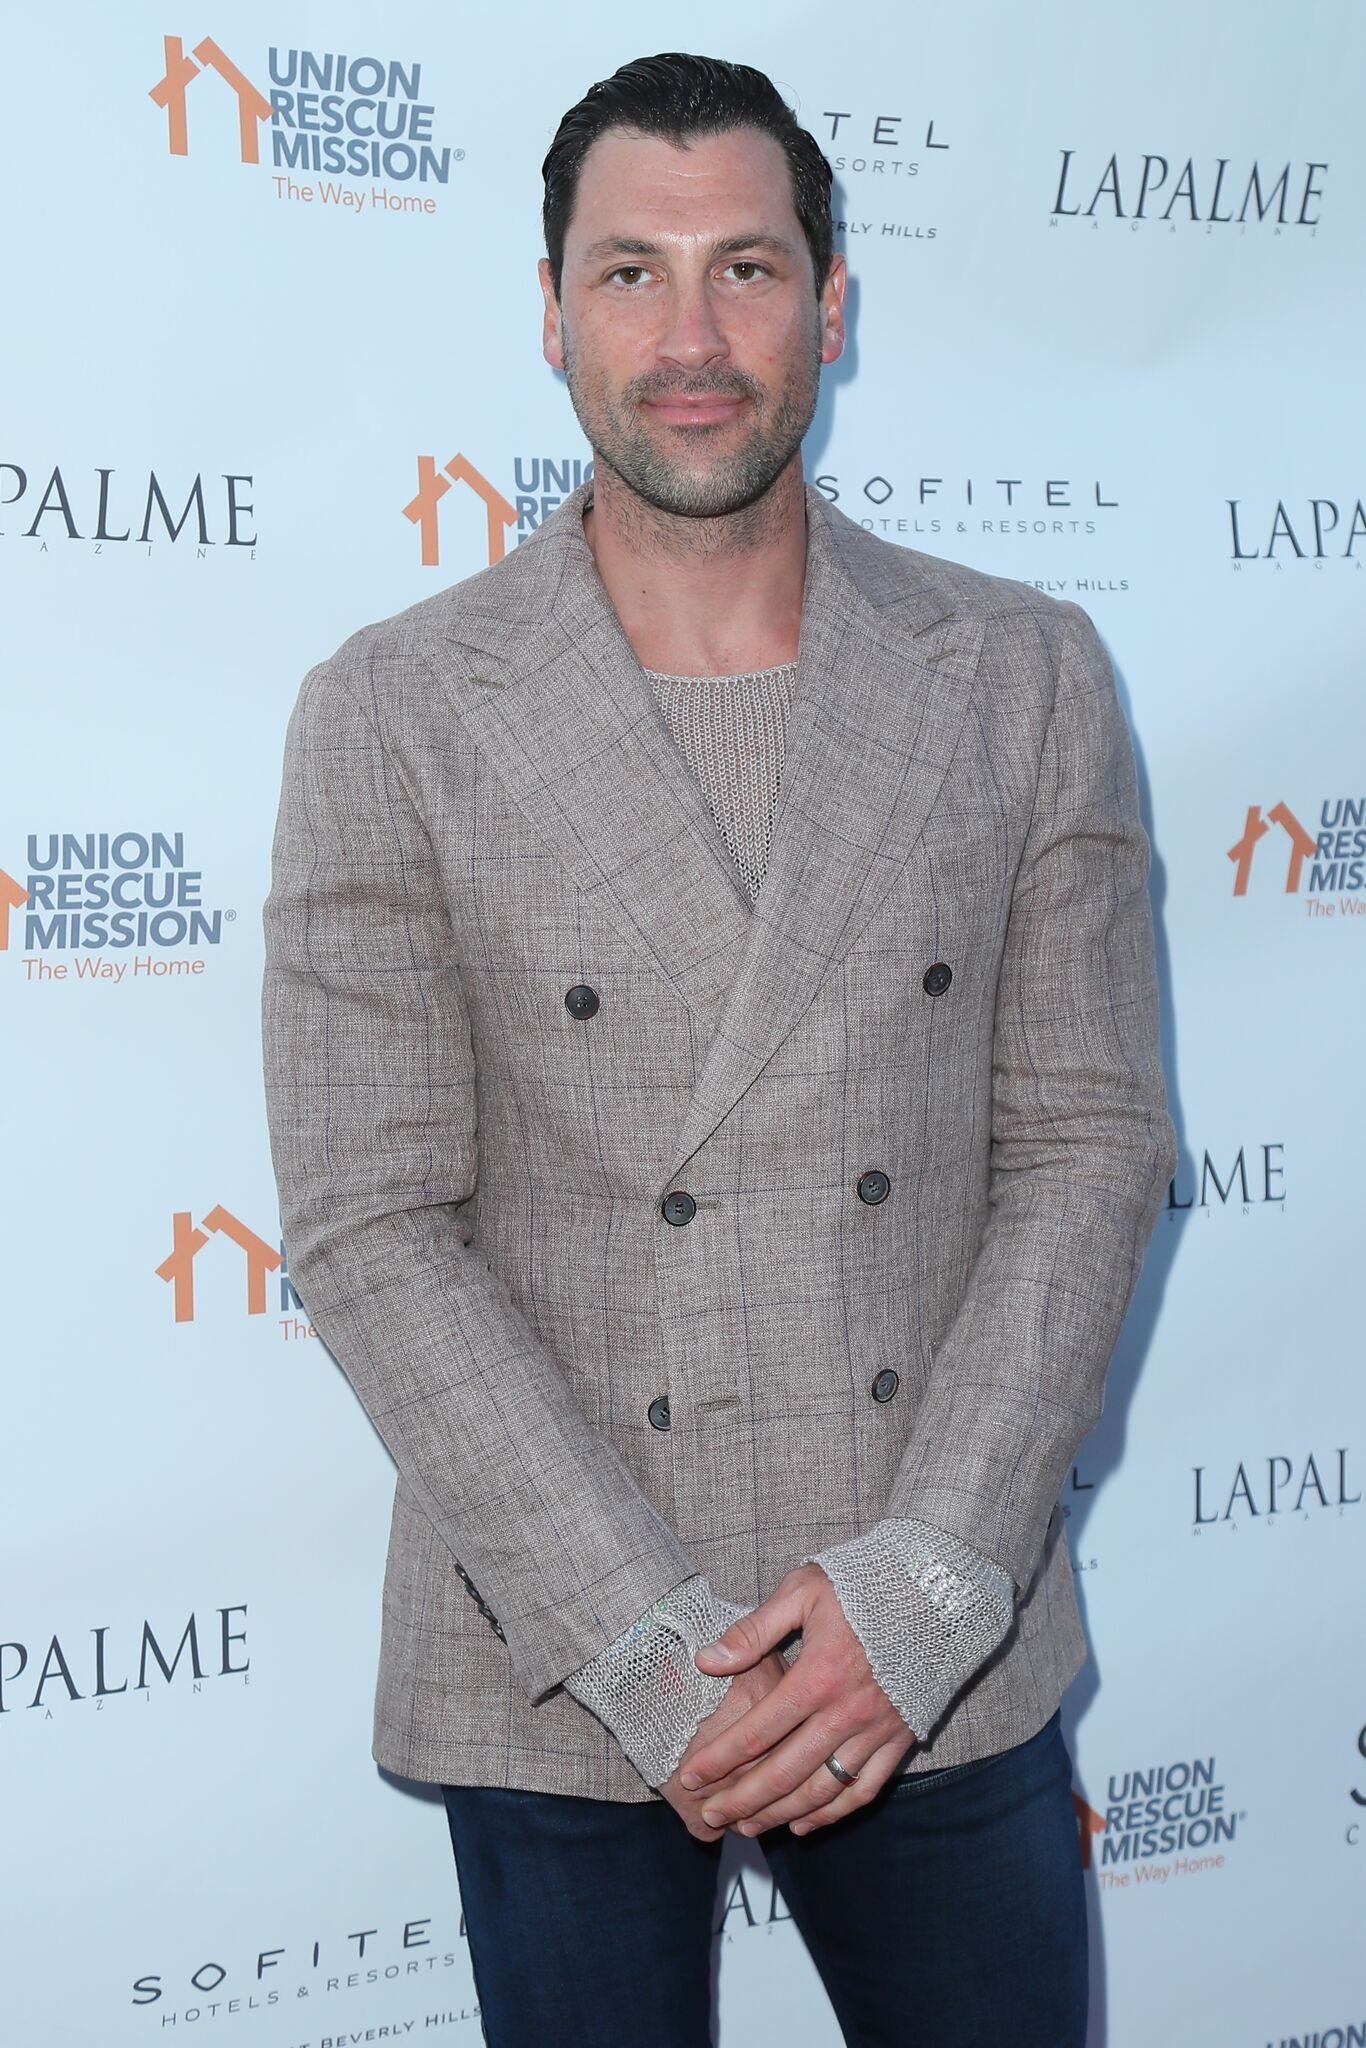 Maks Chmerkovskiy attends Lapalme Magazine's Party For Cover Stars Anthony Anderson And Meagan Good  | Getty Images / Global Images Ukraine